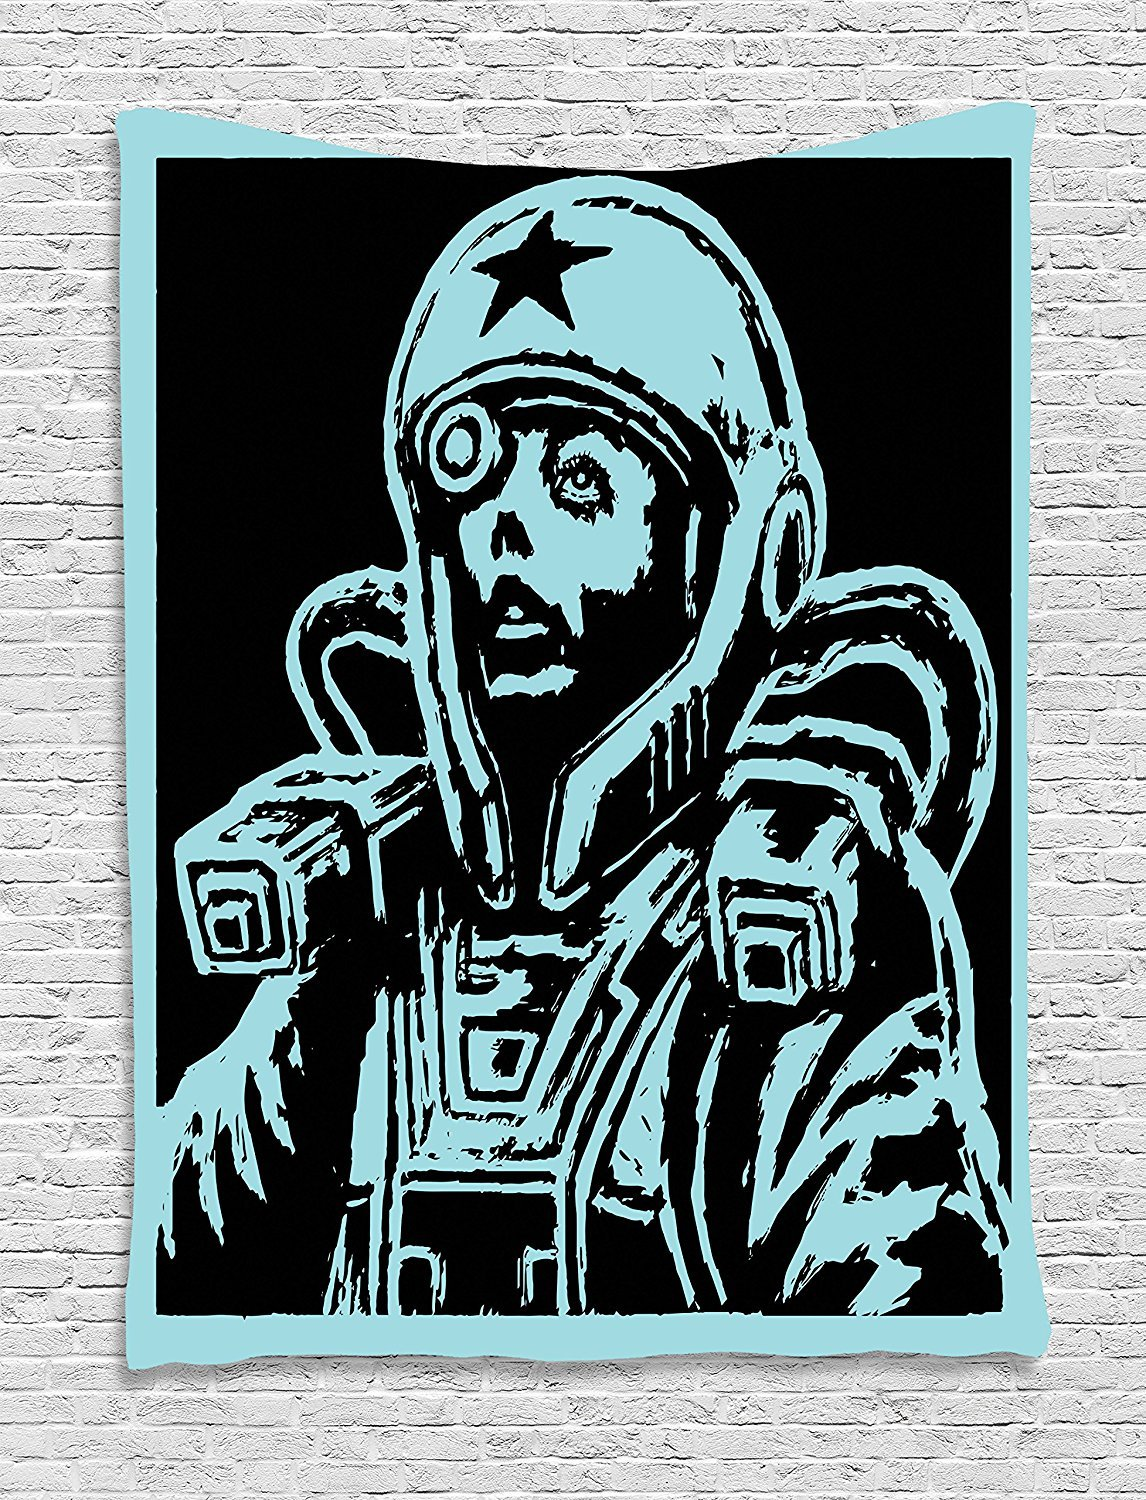 asddcdfdd Astronaut Tapestry, Female Astronaut Space Woman Science Fiction Theme Hand Made Drawing Space Galaxy, Wall Hanging for Bedroom Living Room Dorm, 60 W X 80 L Inches, Teal Black